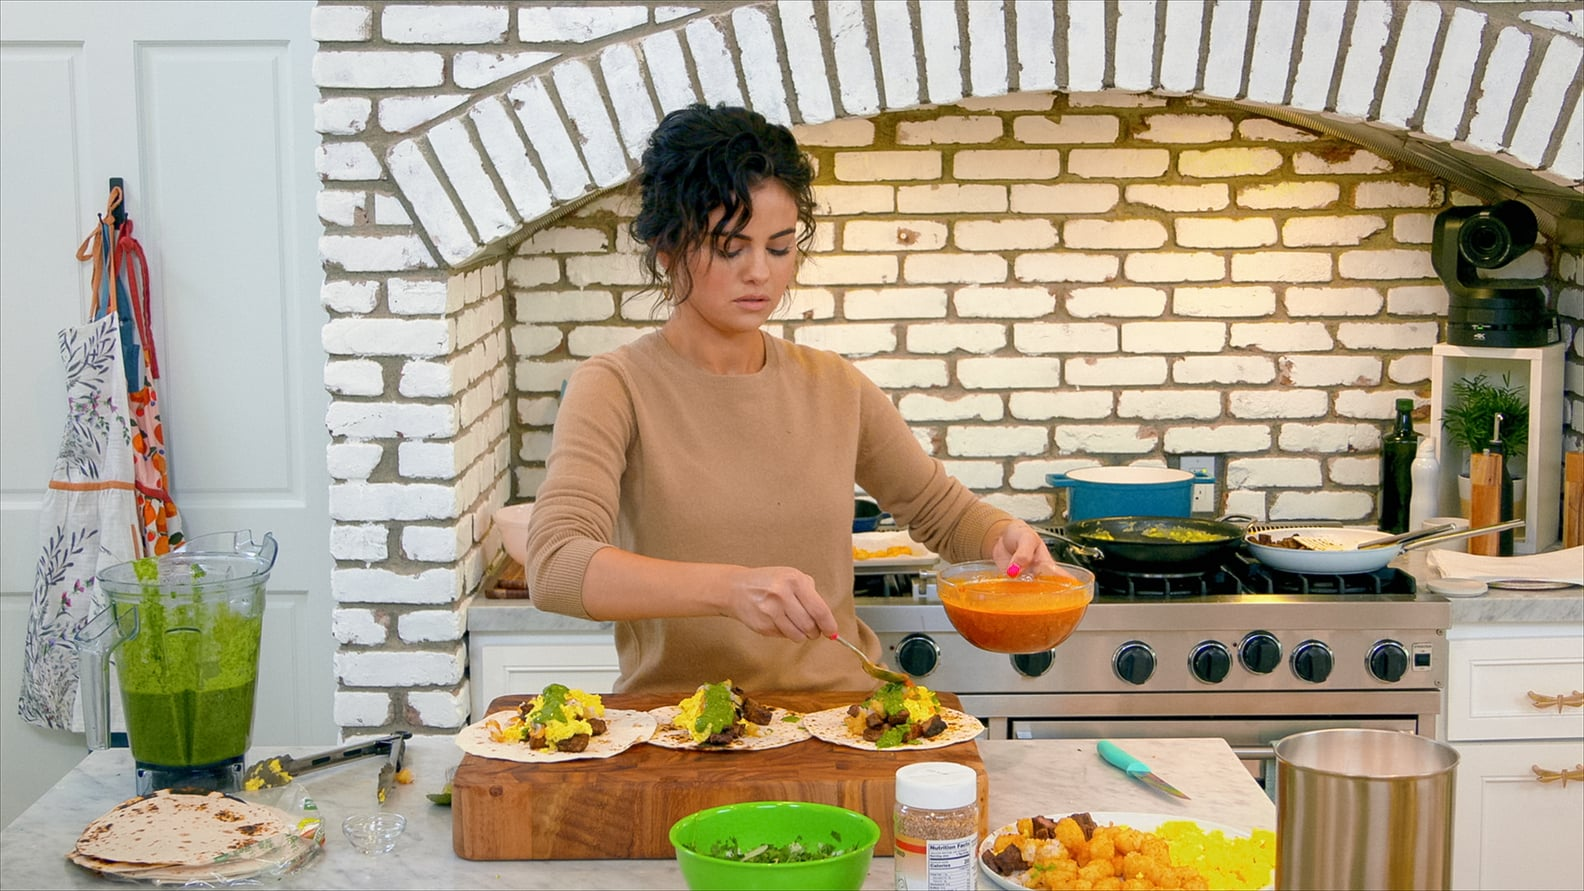 Recipes, Menus, Food & Wine   I've Never Met a Kitchen I've Wanted More Than Selena Gomez's — I Mean, Look at That Stove!   POPSUGAR Food Photo 8